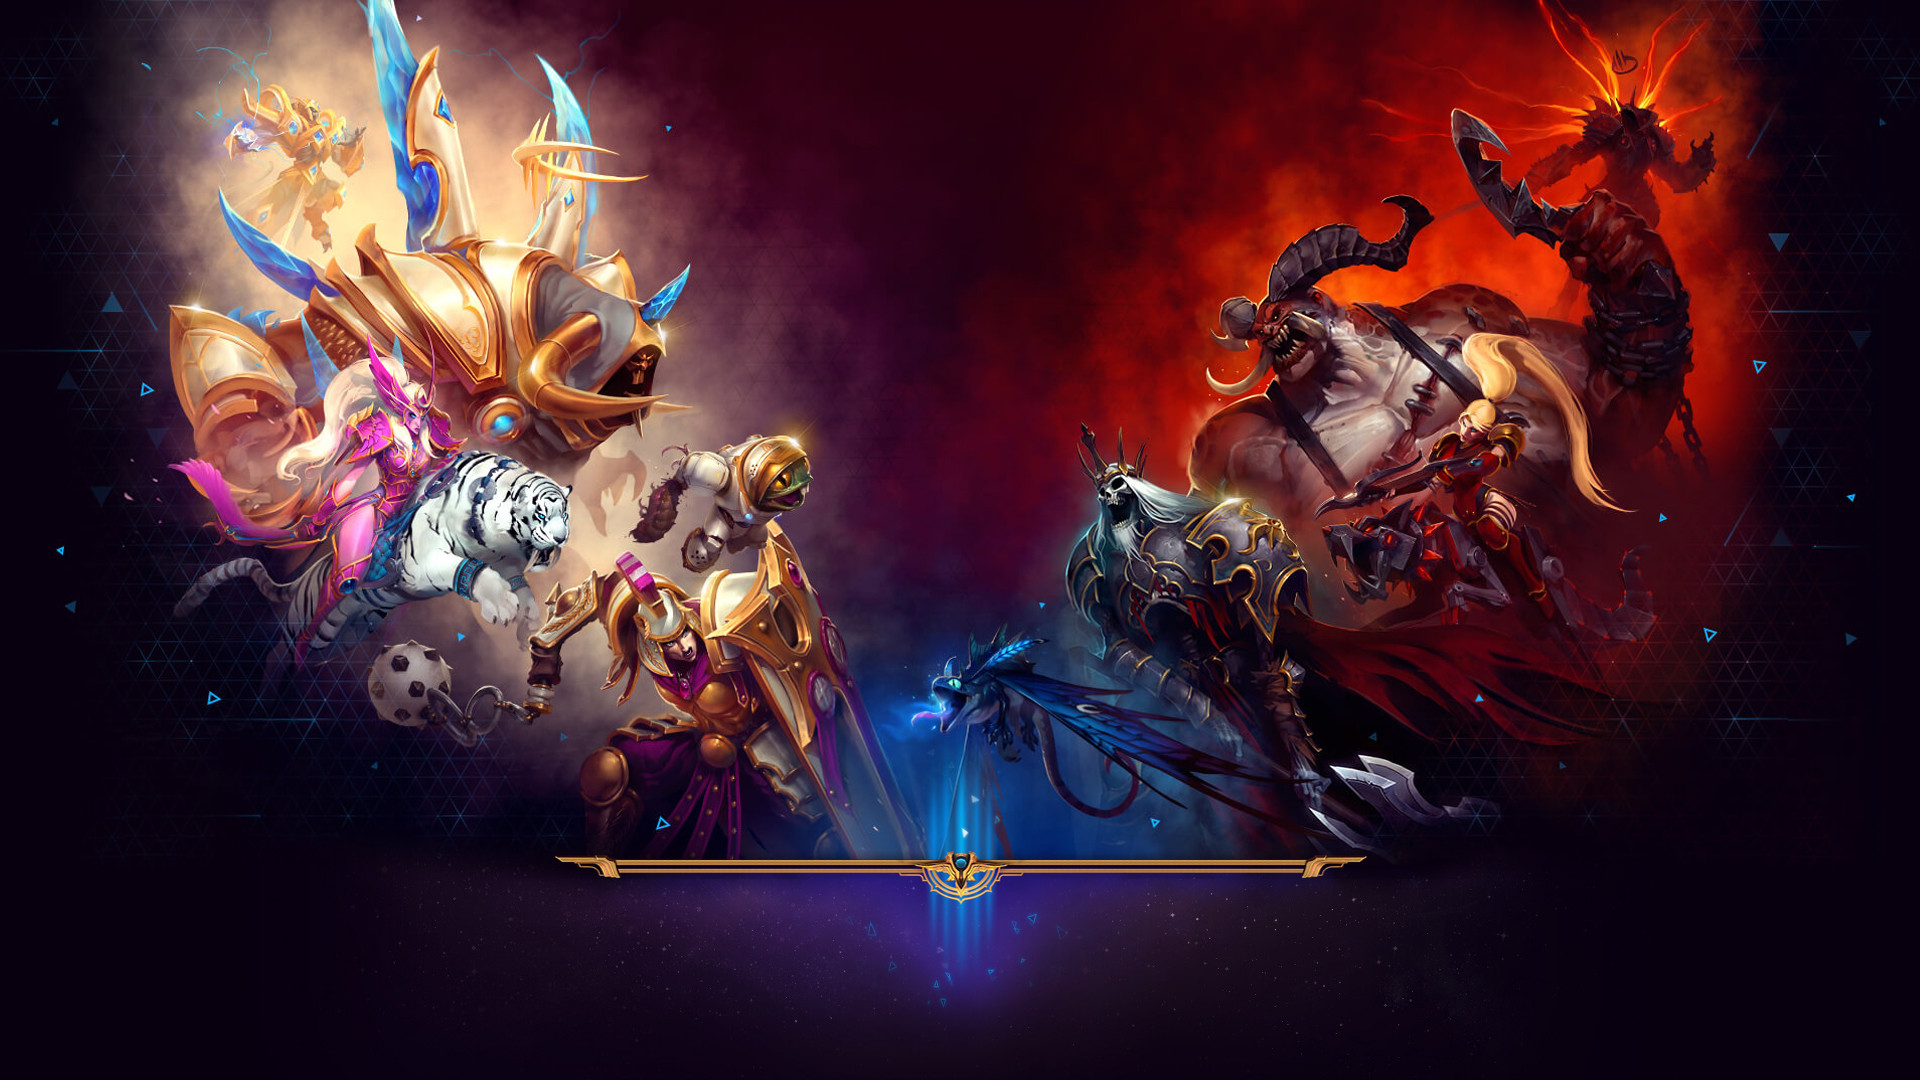 Heroes Of The Storm Wallpapers Pack 862: Heroes Of The .